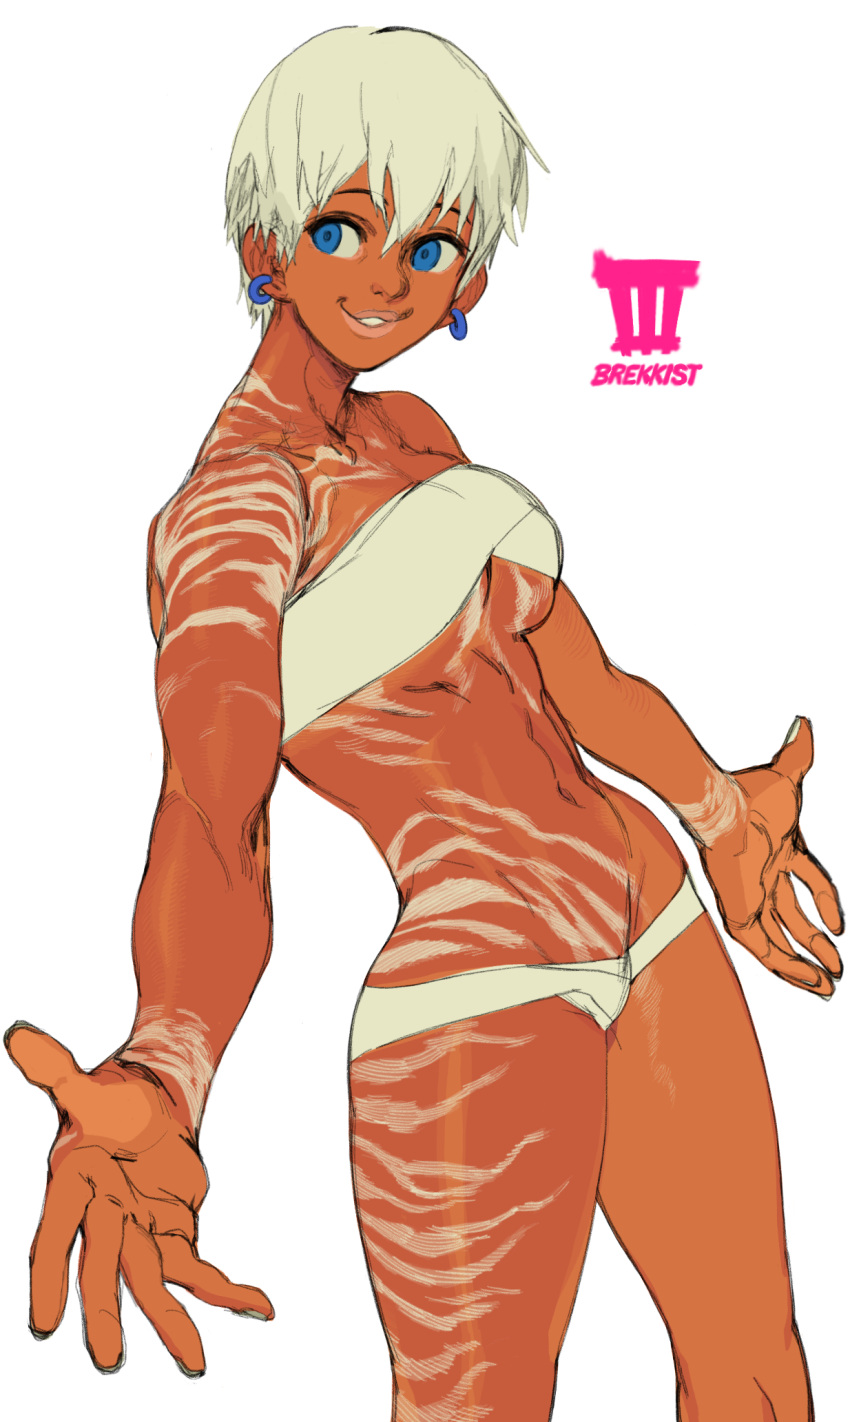 1girl abs bare_shoulders blue_earrings blue_eyes breasts brekkist commentary dark_skin elena_(street_fighter) english_commentary full_body_tattoo highres lips lowleg lowleg_panties medium_breasts navel outstretched_arms panties redesign short_hair solo strapless street_fighter street_fighter_iii_(series) tattoo toned tribal_tattoo tubetop under_boob underwear very_dark_skin white_background white_hair white_panties white_tubetop